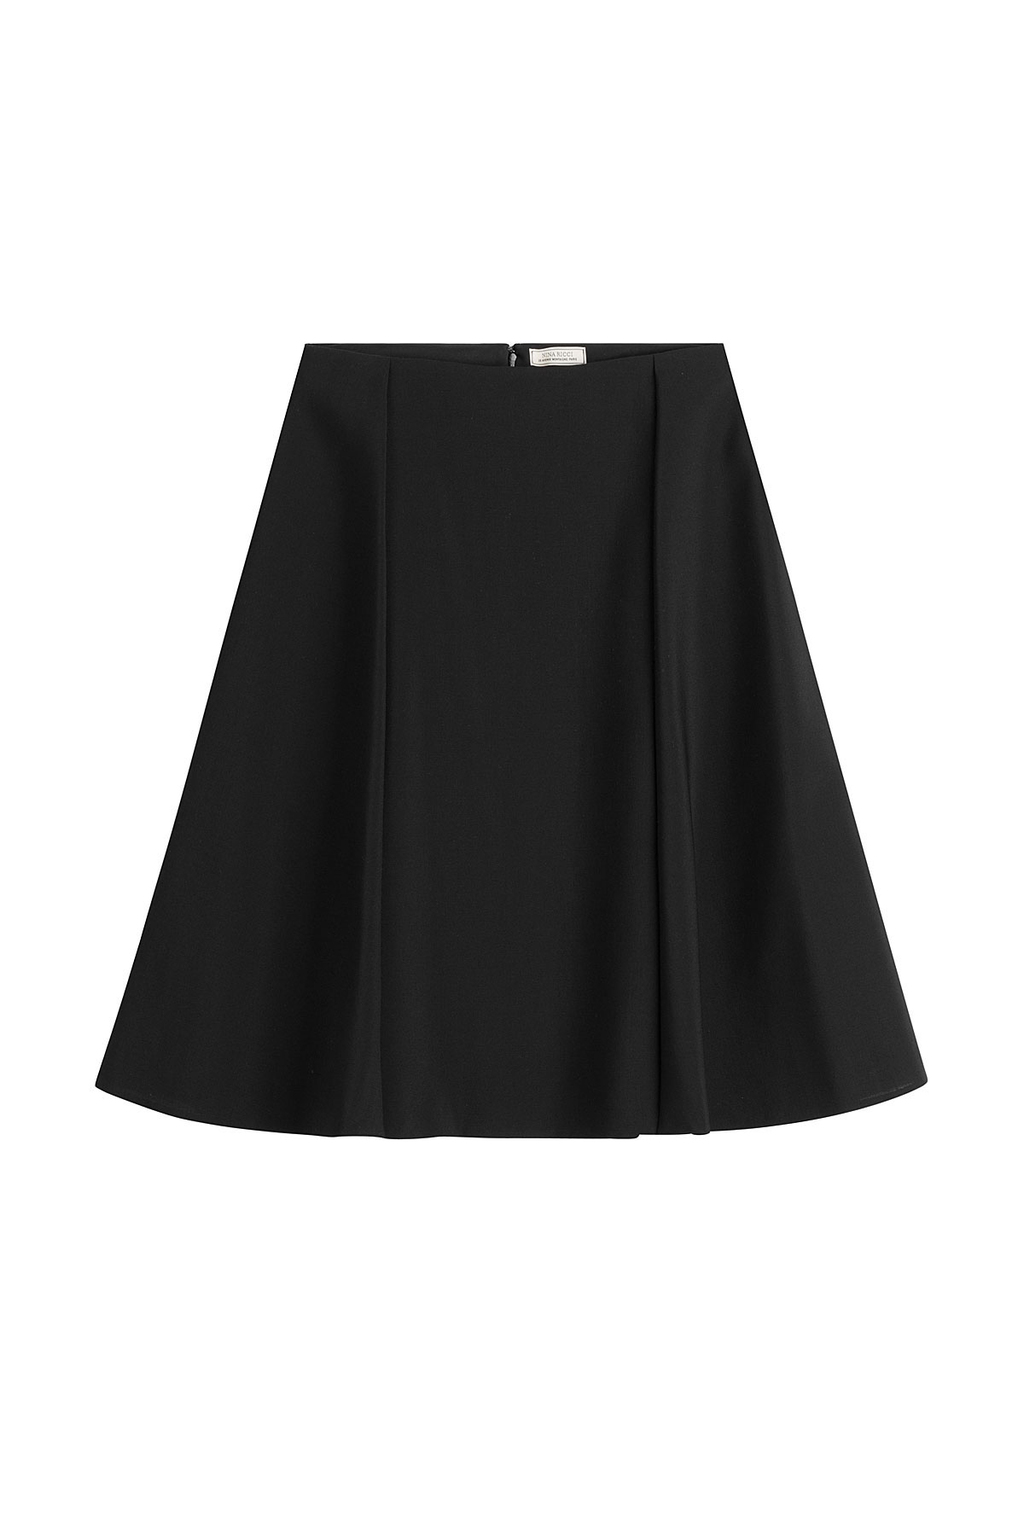 Flared Silk Skirt - pattern: plain; fit: loose/voluminous; waist: mid/regular rise; predominant colour: black; occasions: evening; length: just above the knee; style: a-line; fibres: silk - 100%; texture group: silky - light; pattern type: fabric; season: s/s 2016; wardrobe: event